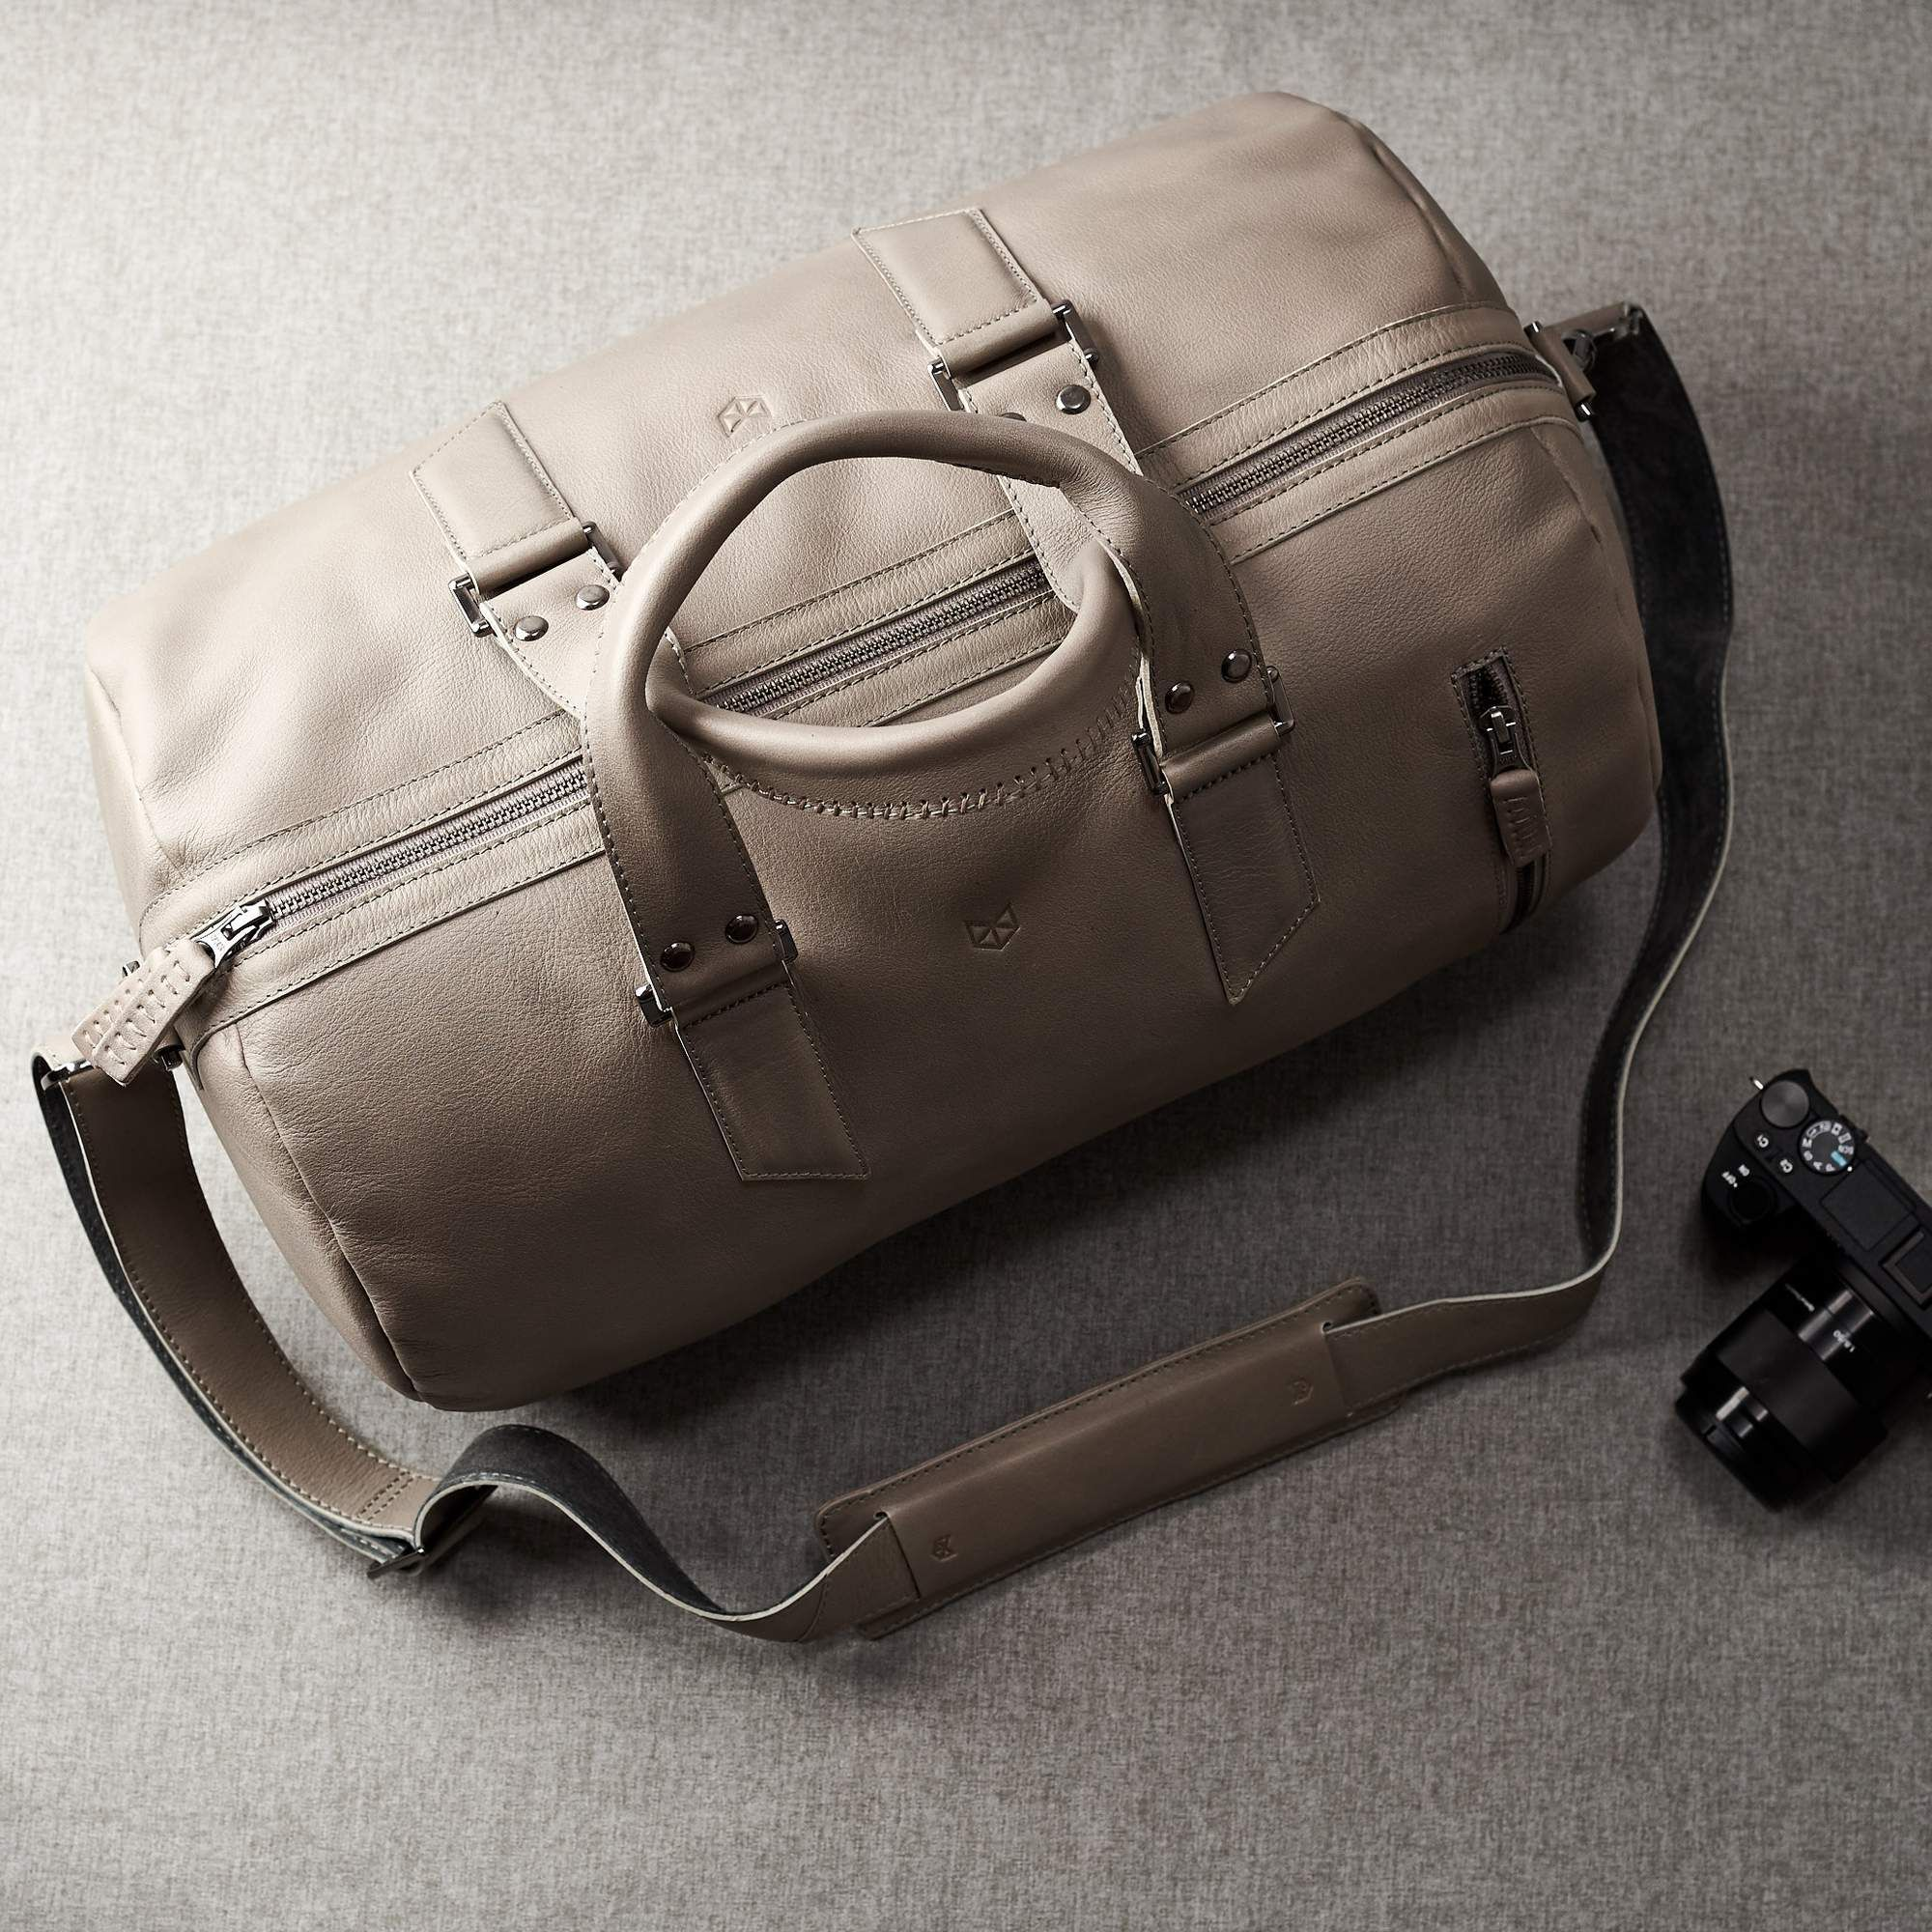 771bd6f4f71a SUBSTANTIAL LEATHER DUFFLE BAG    GREY by Capra - Capra Leather